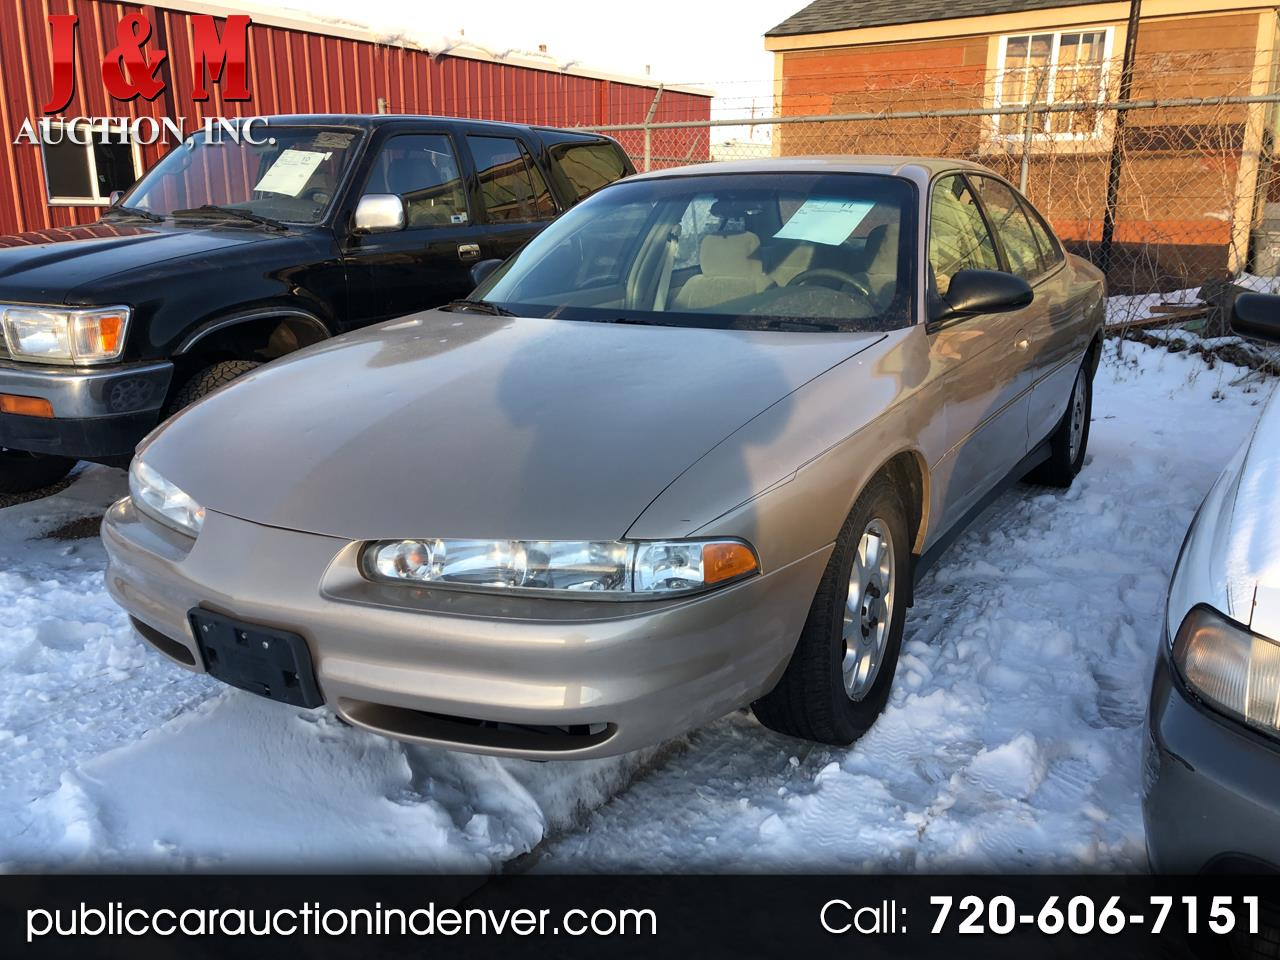 2001 Oldsmobile Intrigue 4dr Sdn GX